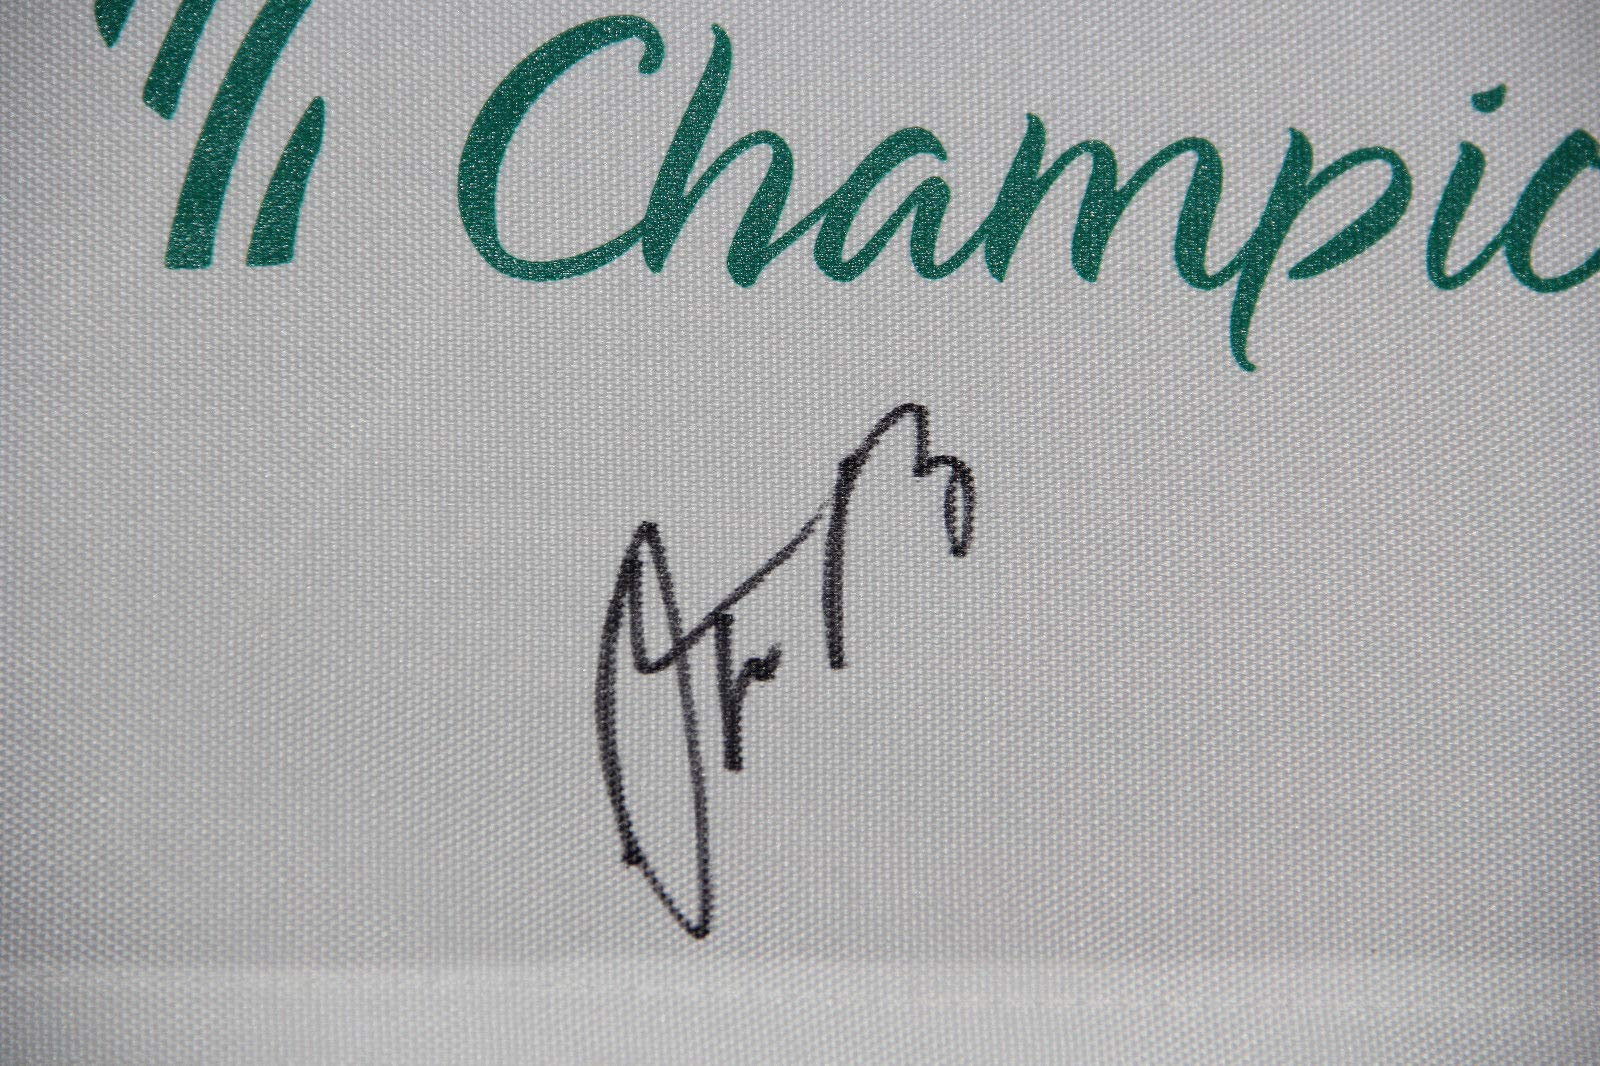 Aaron Rodgers Autographed Signed Auto American Century Championship Flag Bas #F00029 Packers